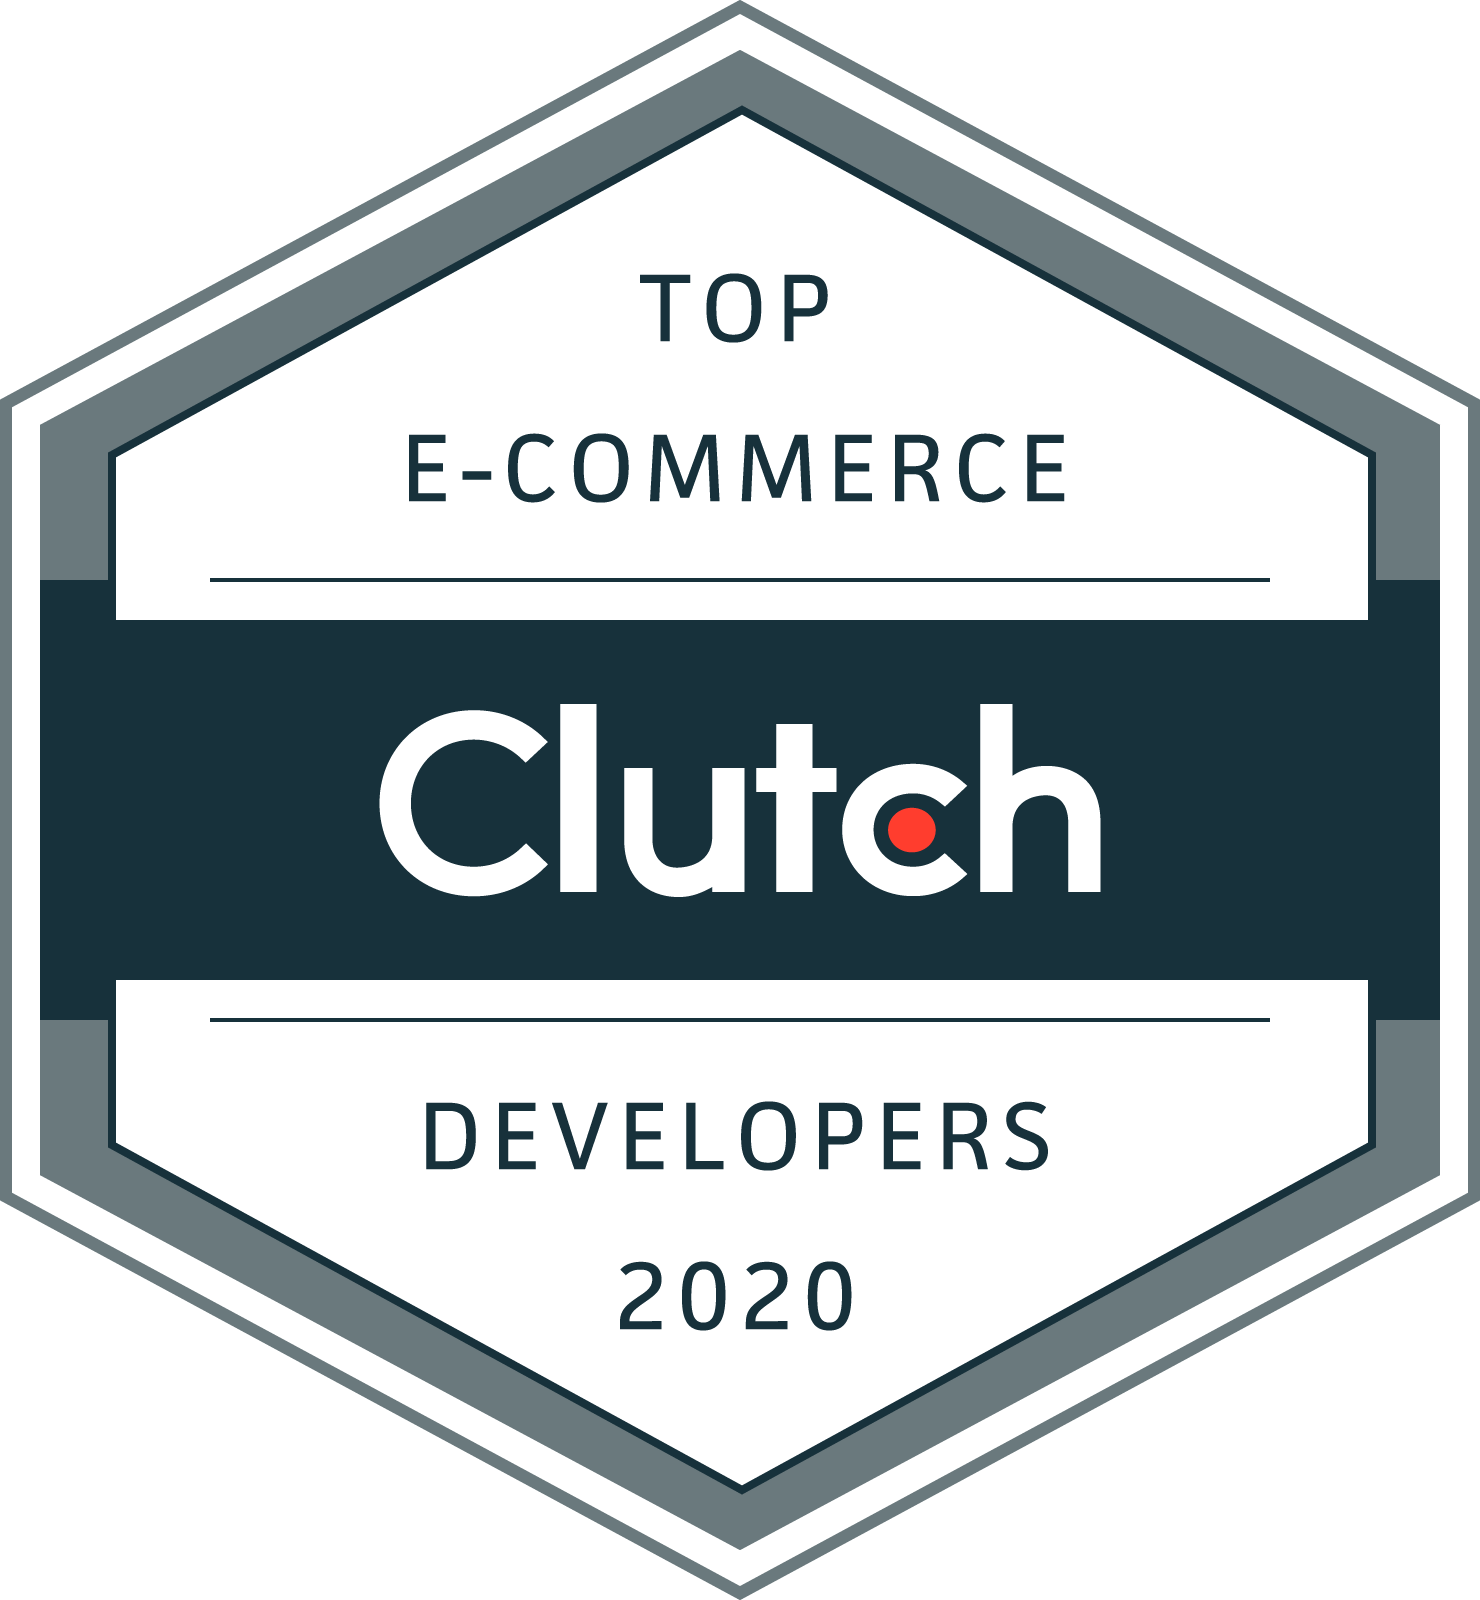 Top Ecommerce Agency